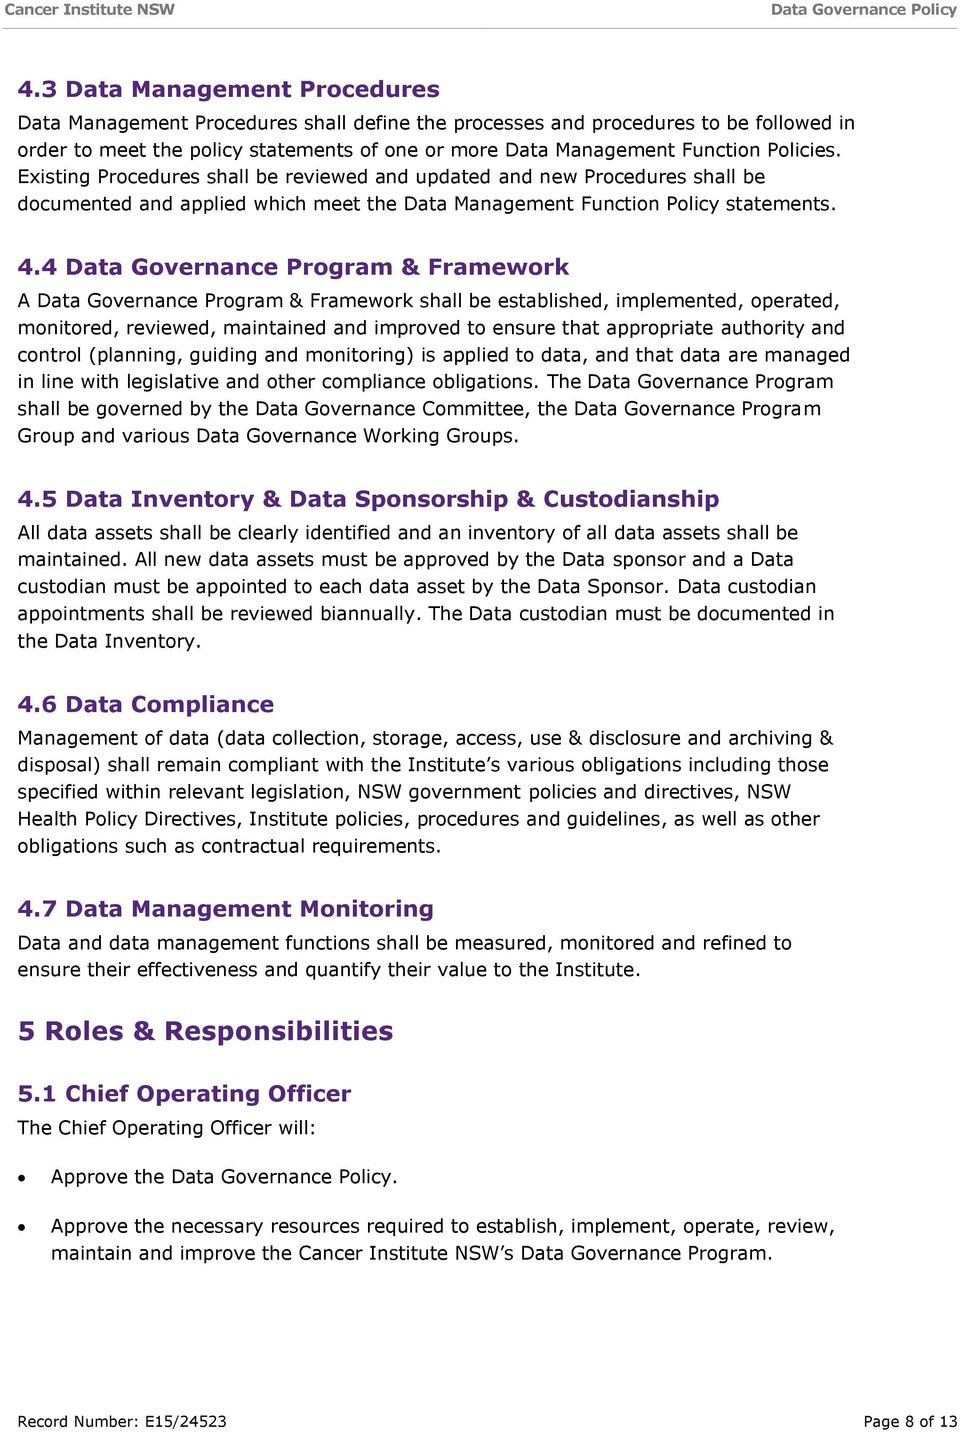 4 Data Governance Program & Framework A Data Governance Program & Framework shall be established, implemented, operated, monitored, reviewed, maintained and improved to ensure that appropriate